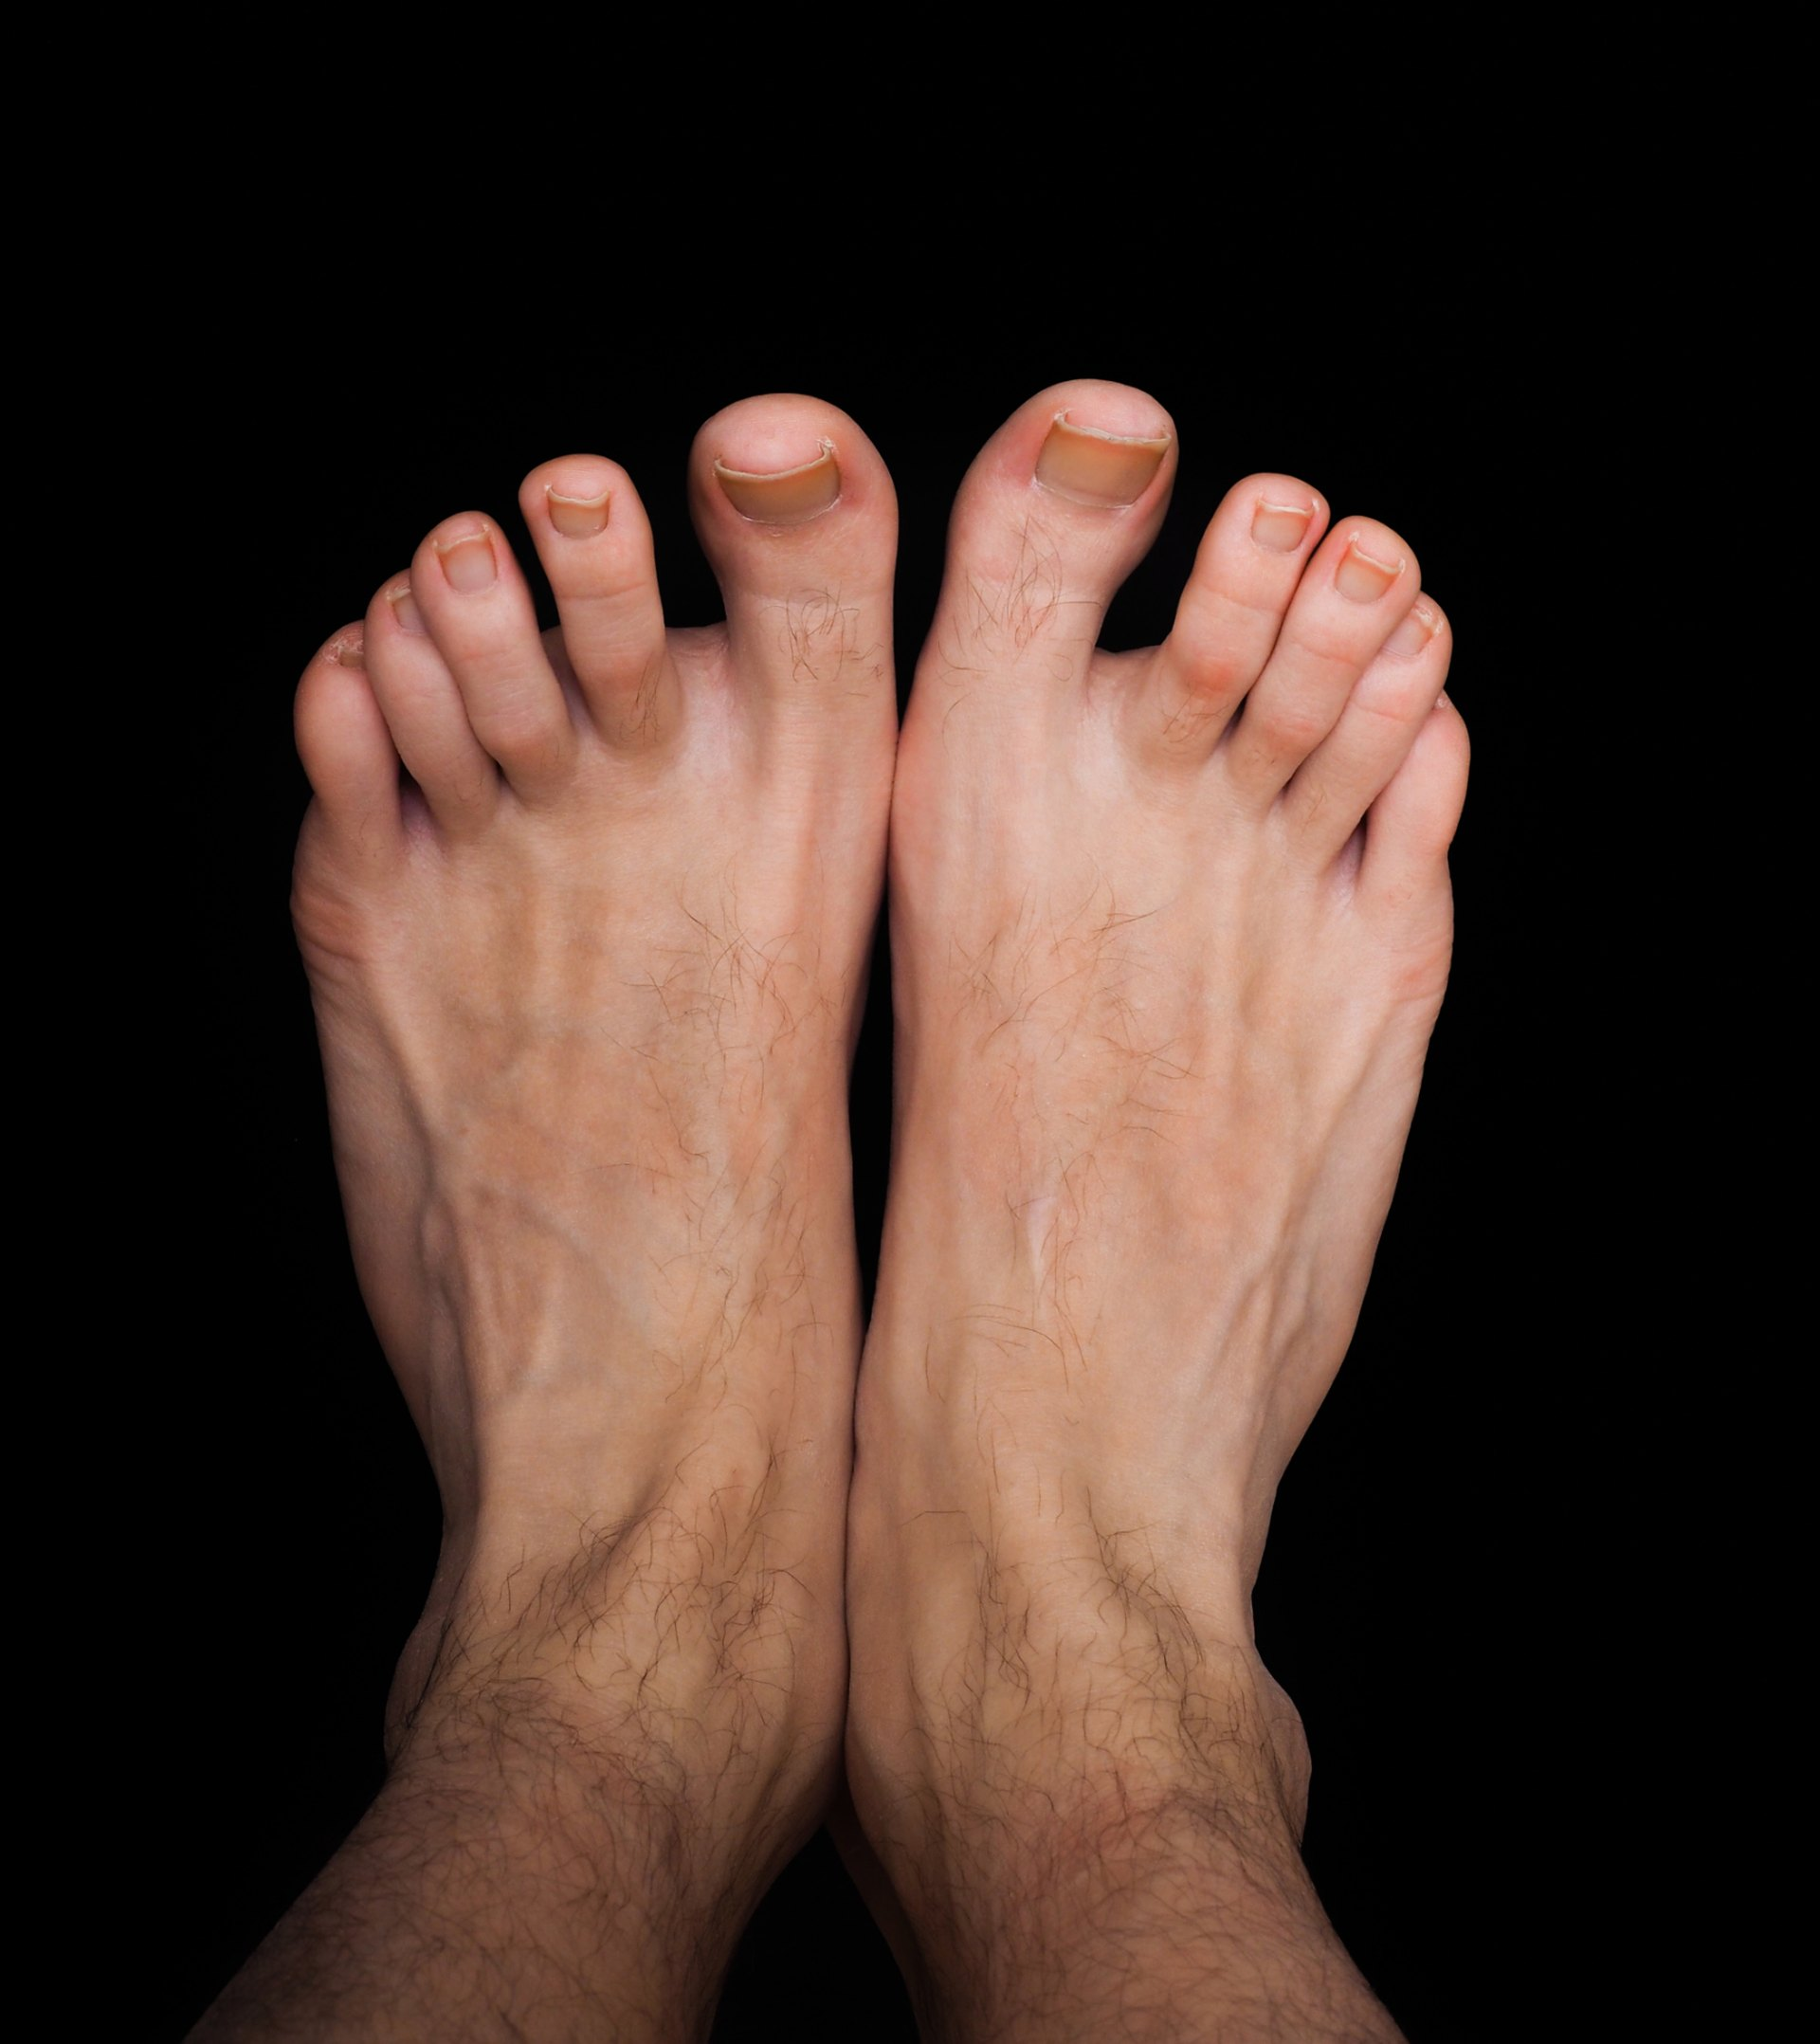 How to Get Rid of Thick Toe Nails | LIVESTRONG.COM